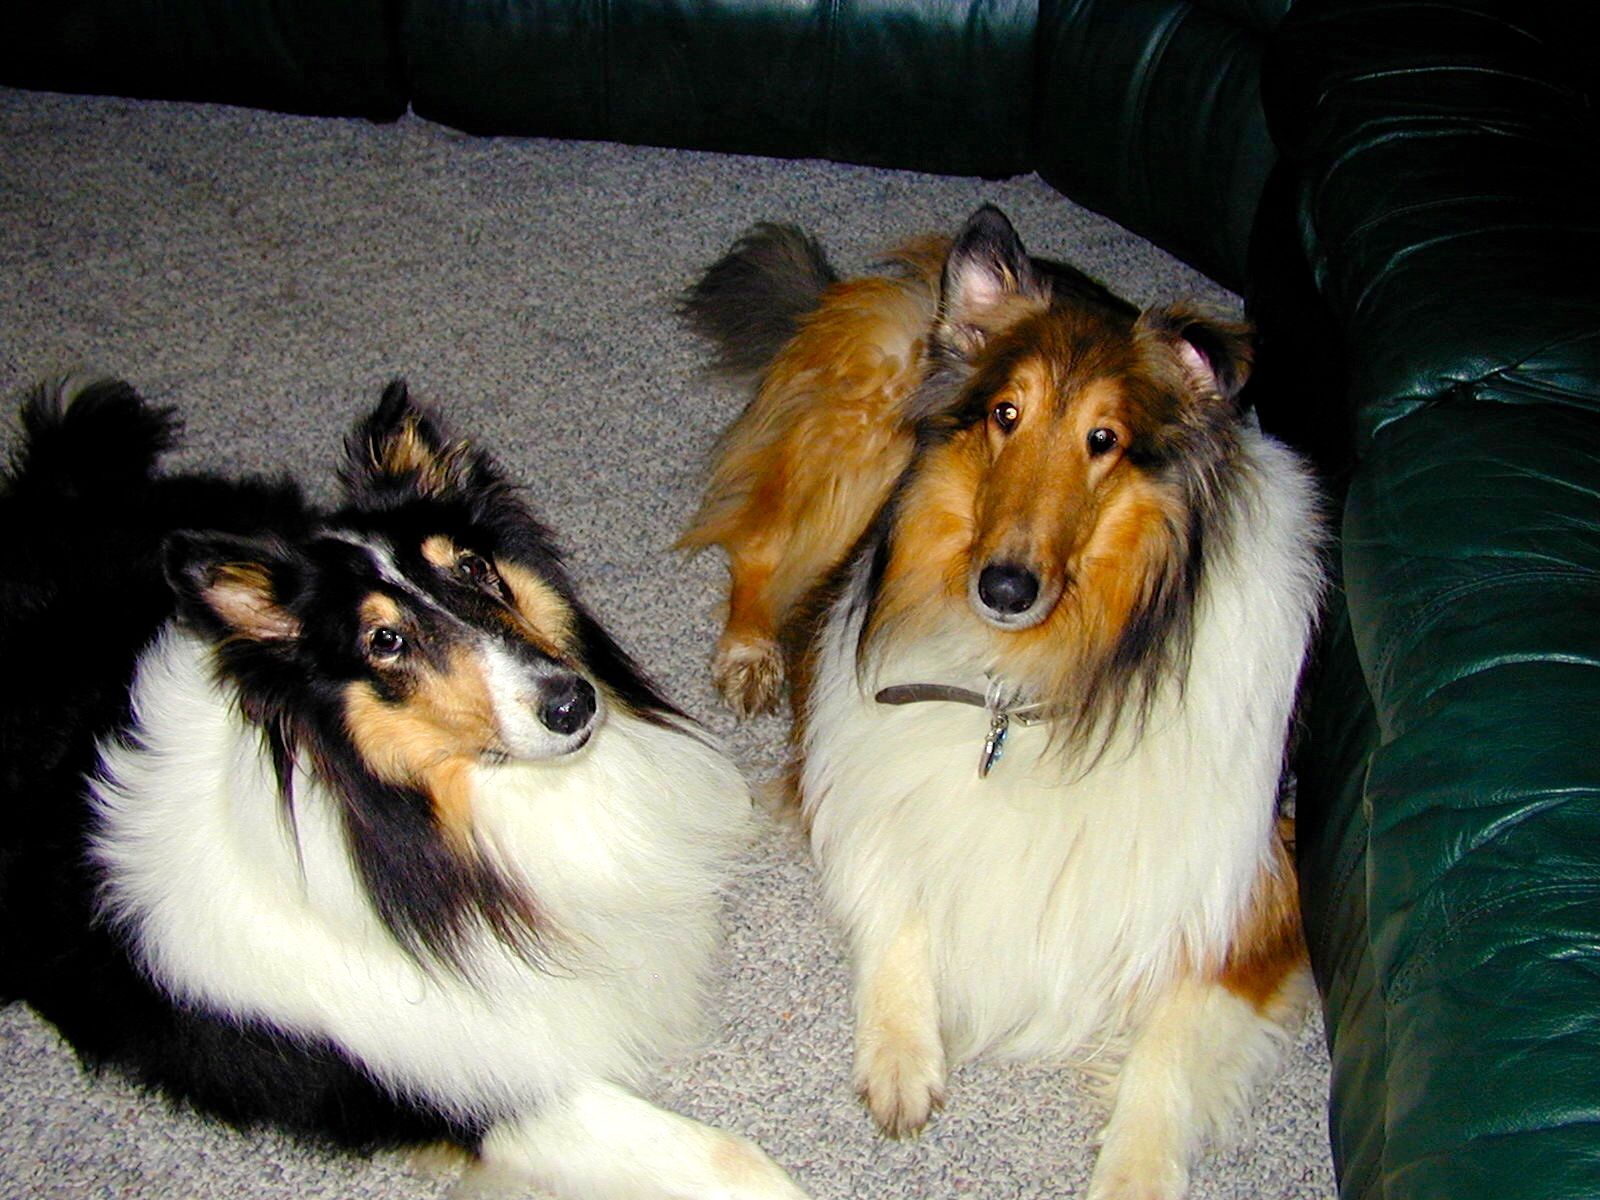 Jasmine S Our First Rescue Collie First Day In Her Forever Home With Her New Brother Chase Rough Collie Dogs Collie